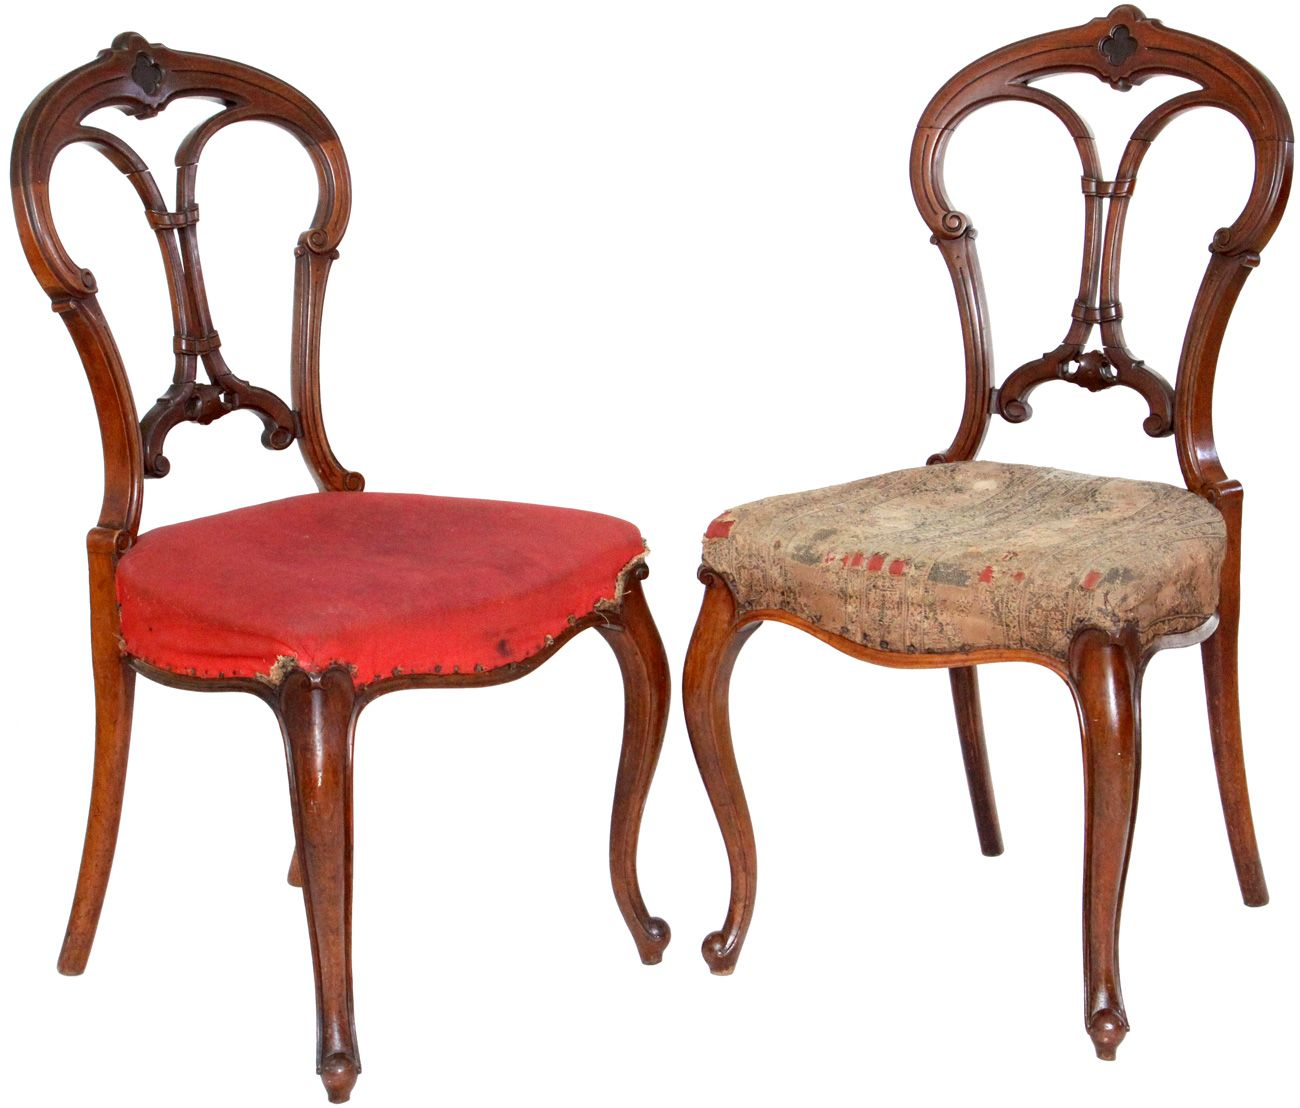 Antique furniture pair of antique victorian balloon back chairs with carved back